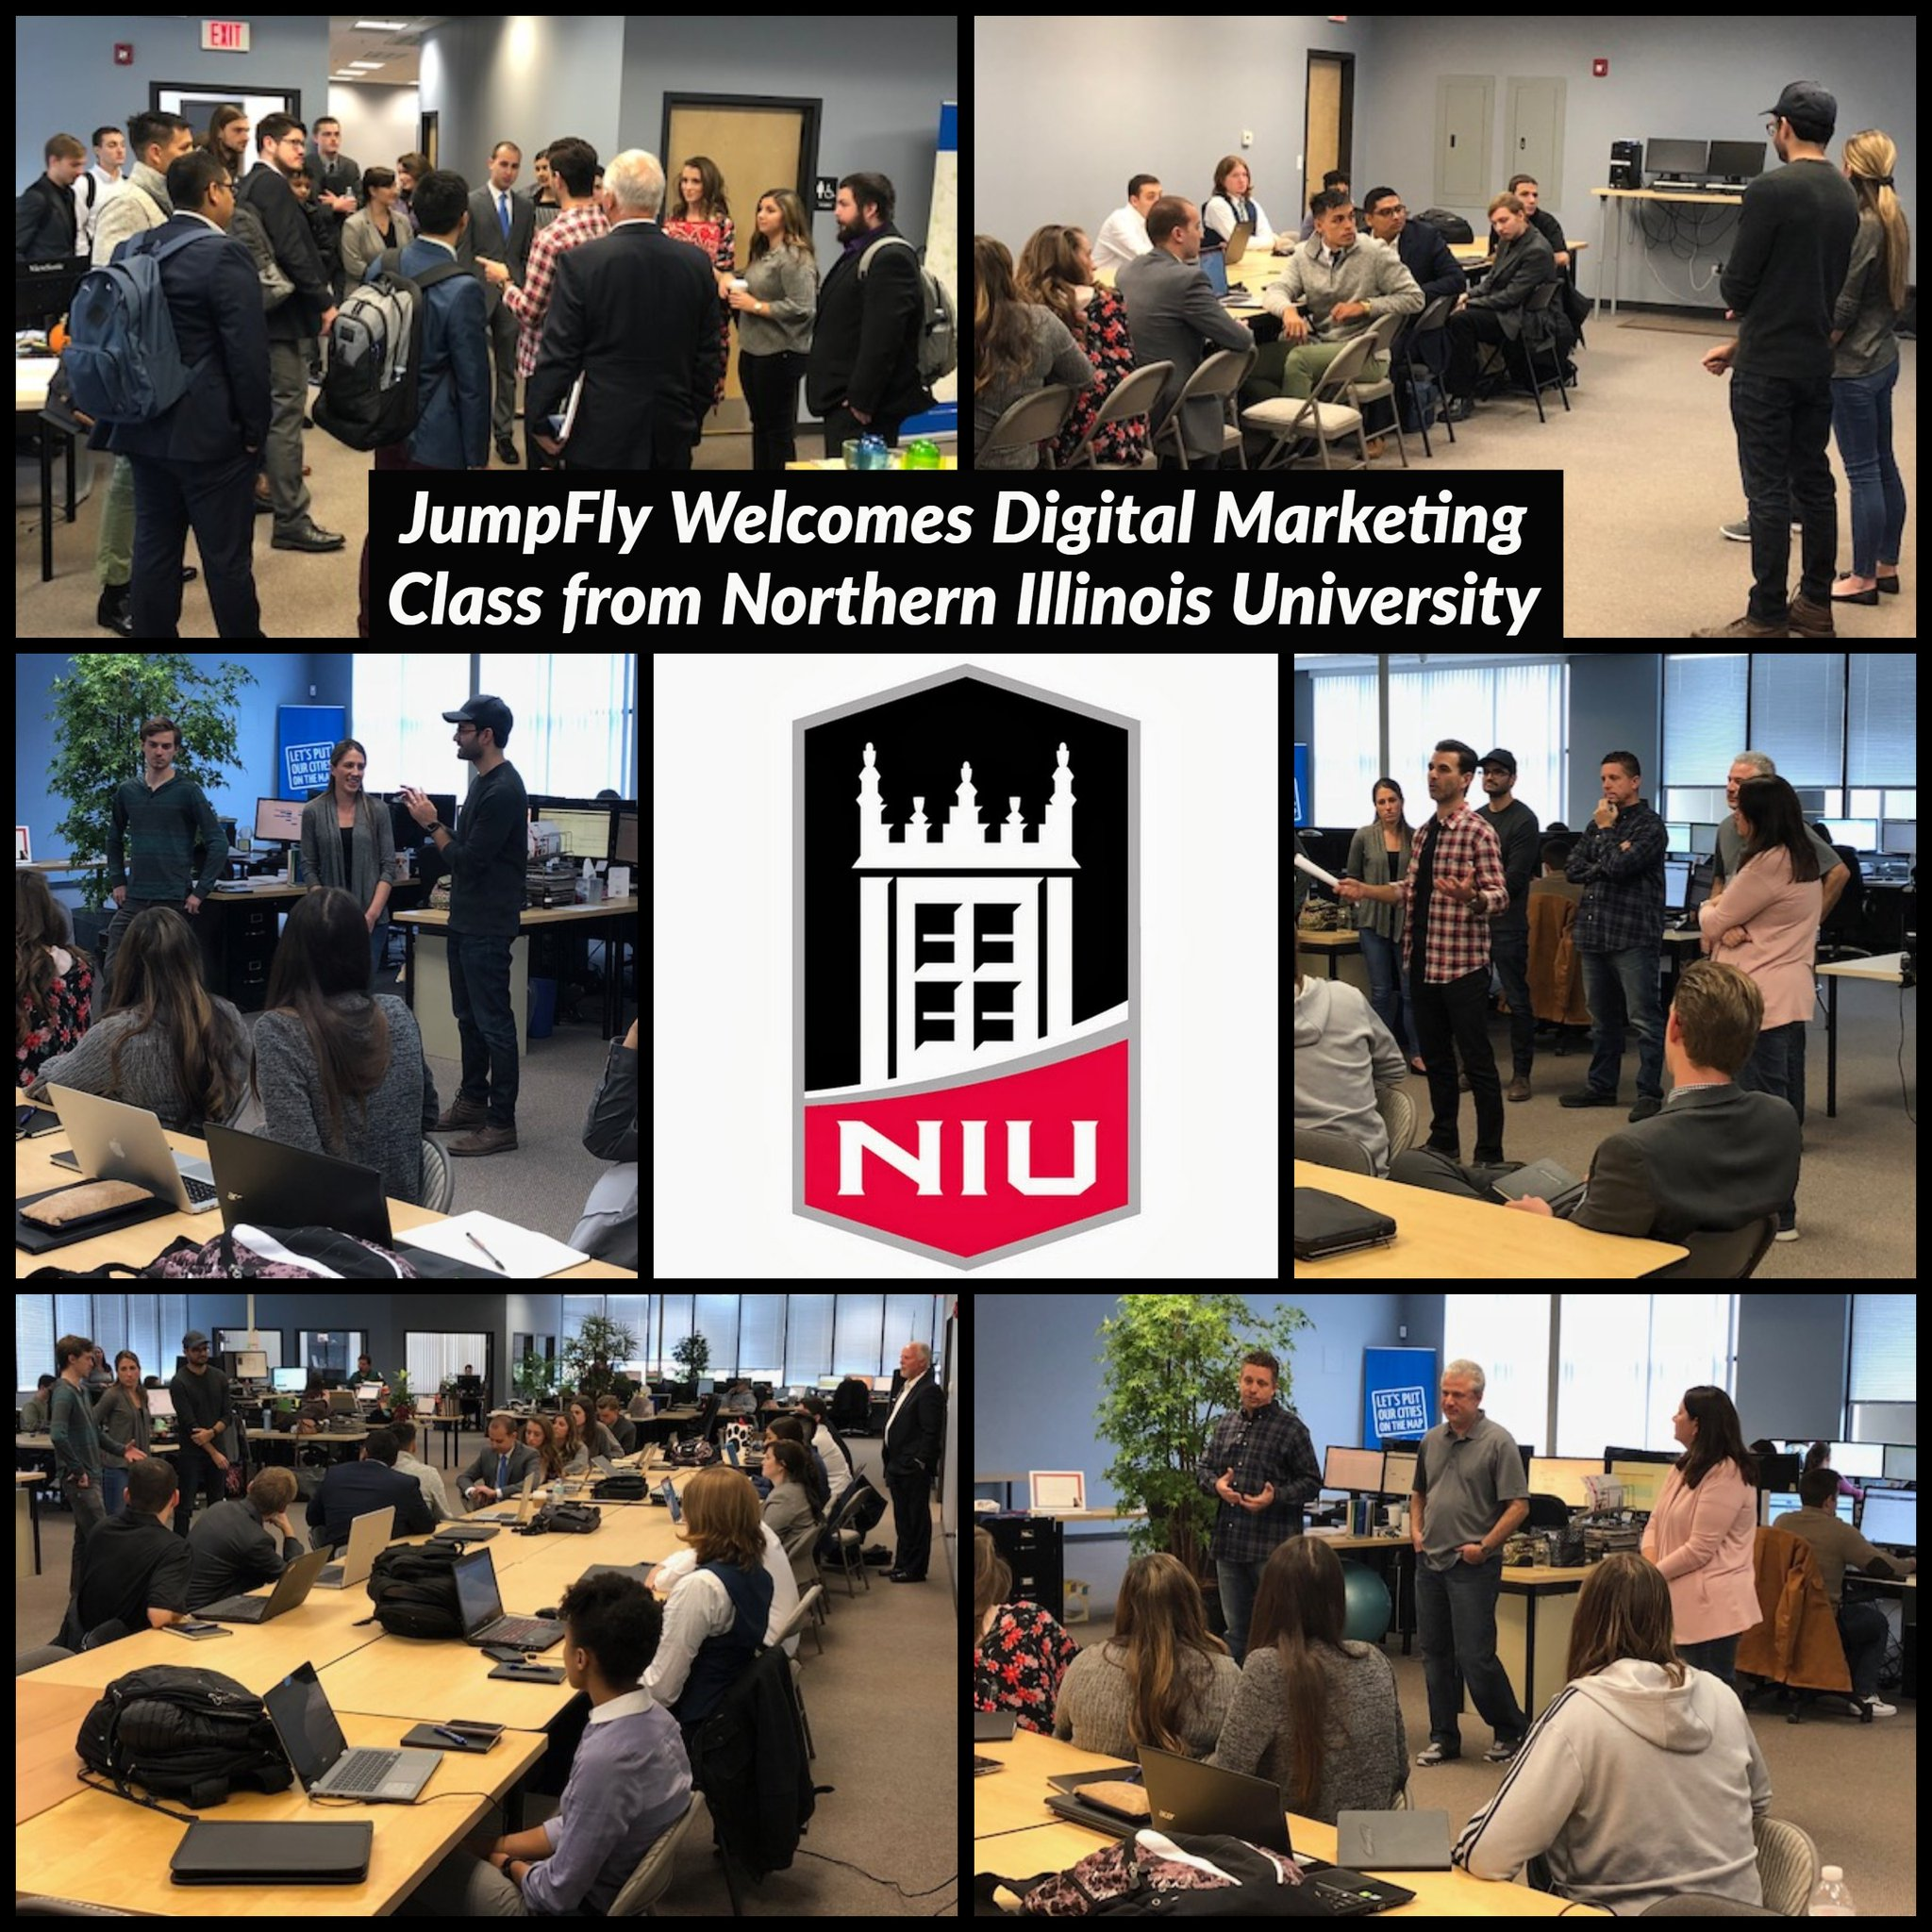 jumpfly-welcomes-marketing-students-from-niu